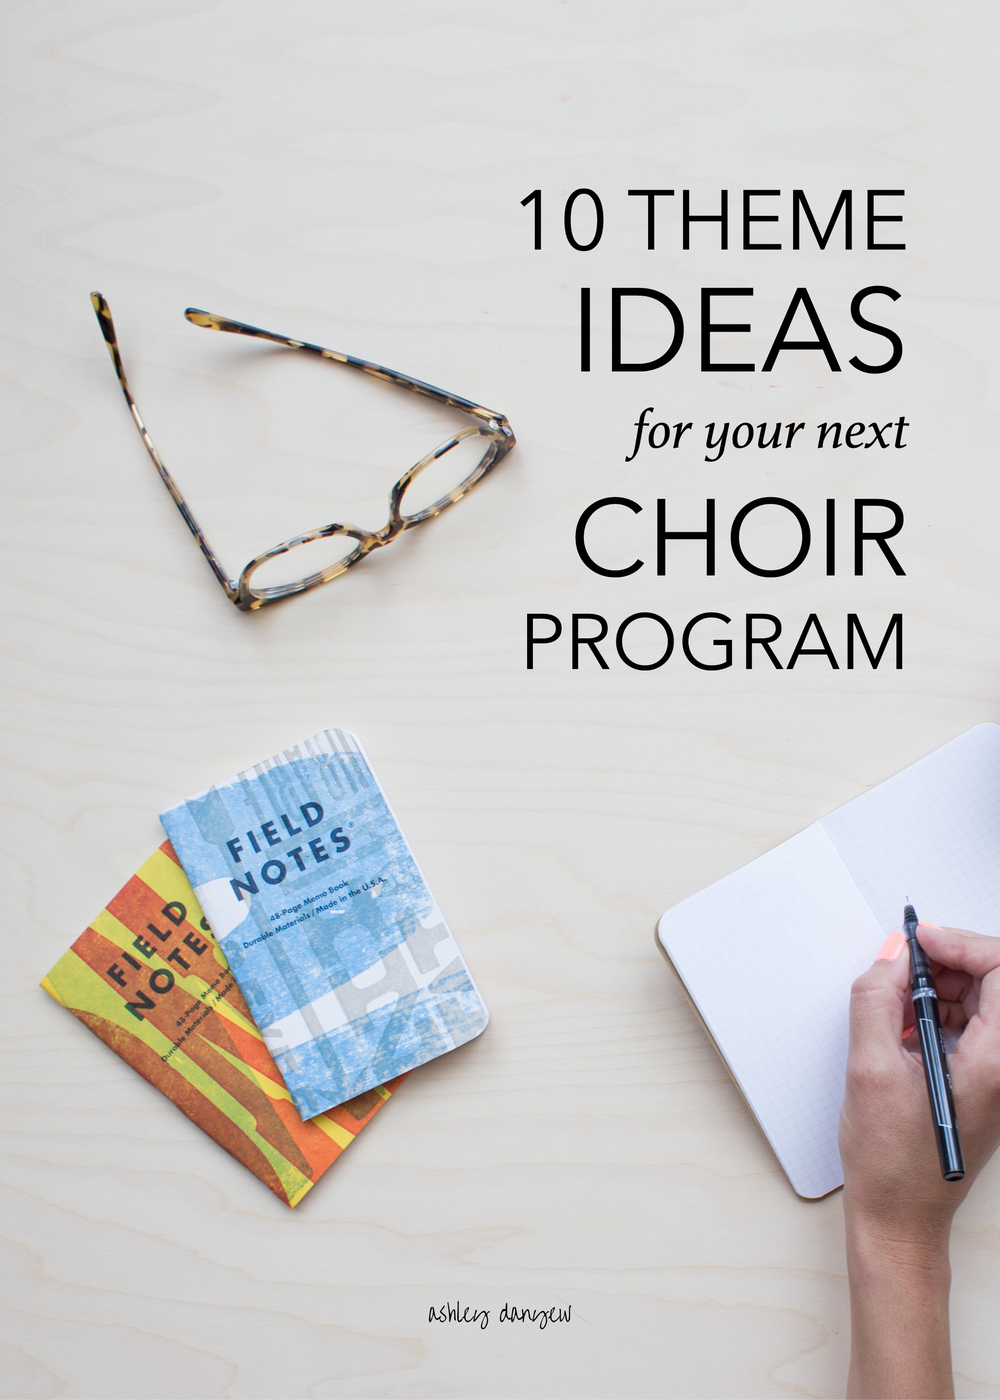 10 Theme Ideas For Your Next Choir Program-01.png